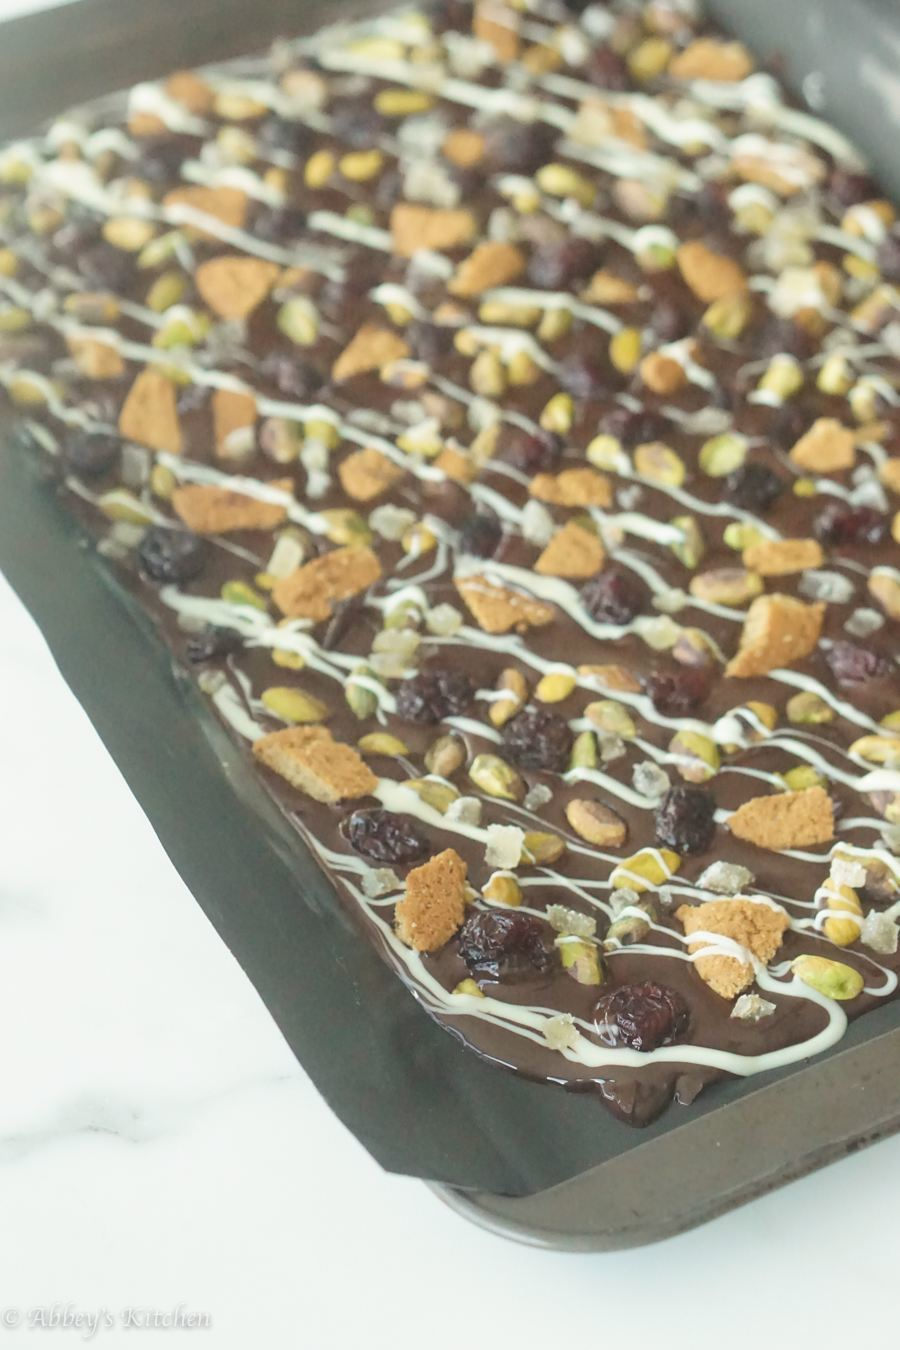 A sheet of chocolate bark before it sets.